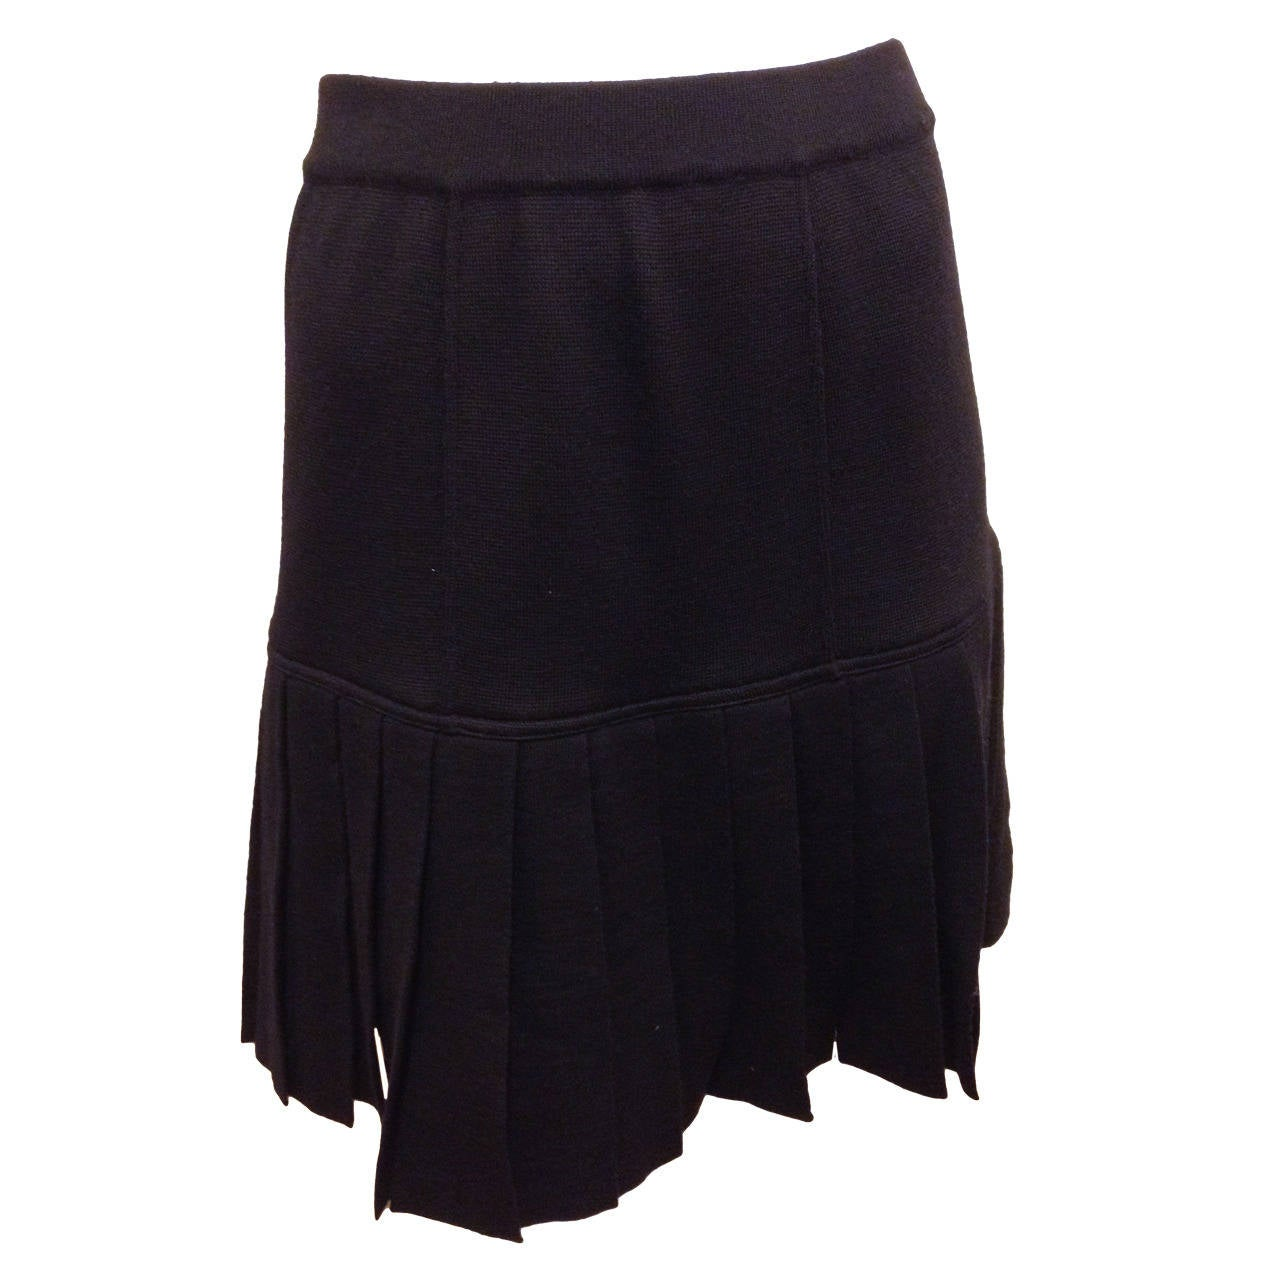 chanel black knit pleated skirt at 1stdibs